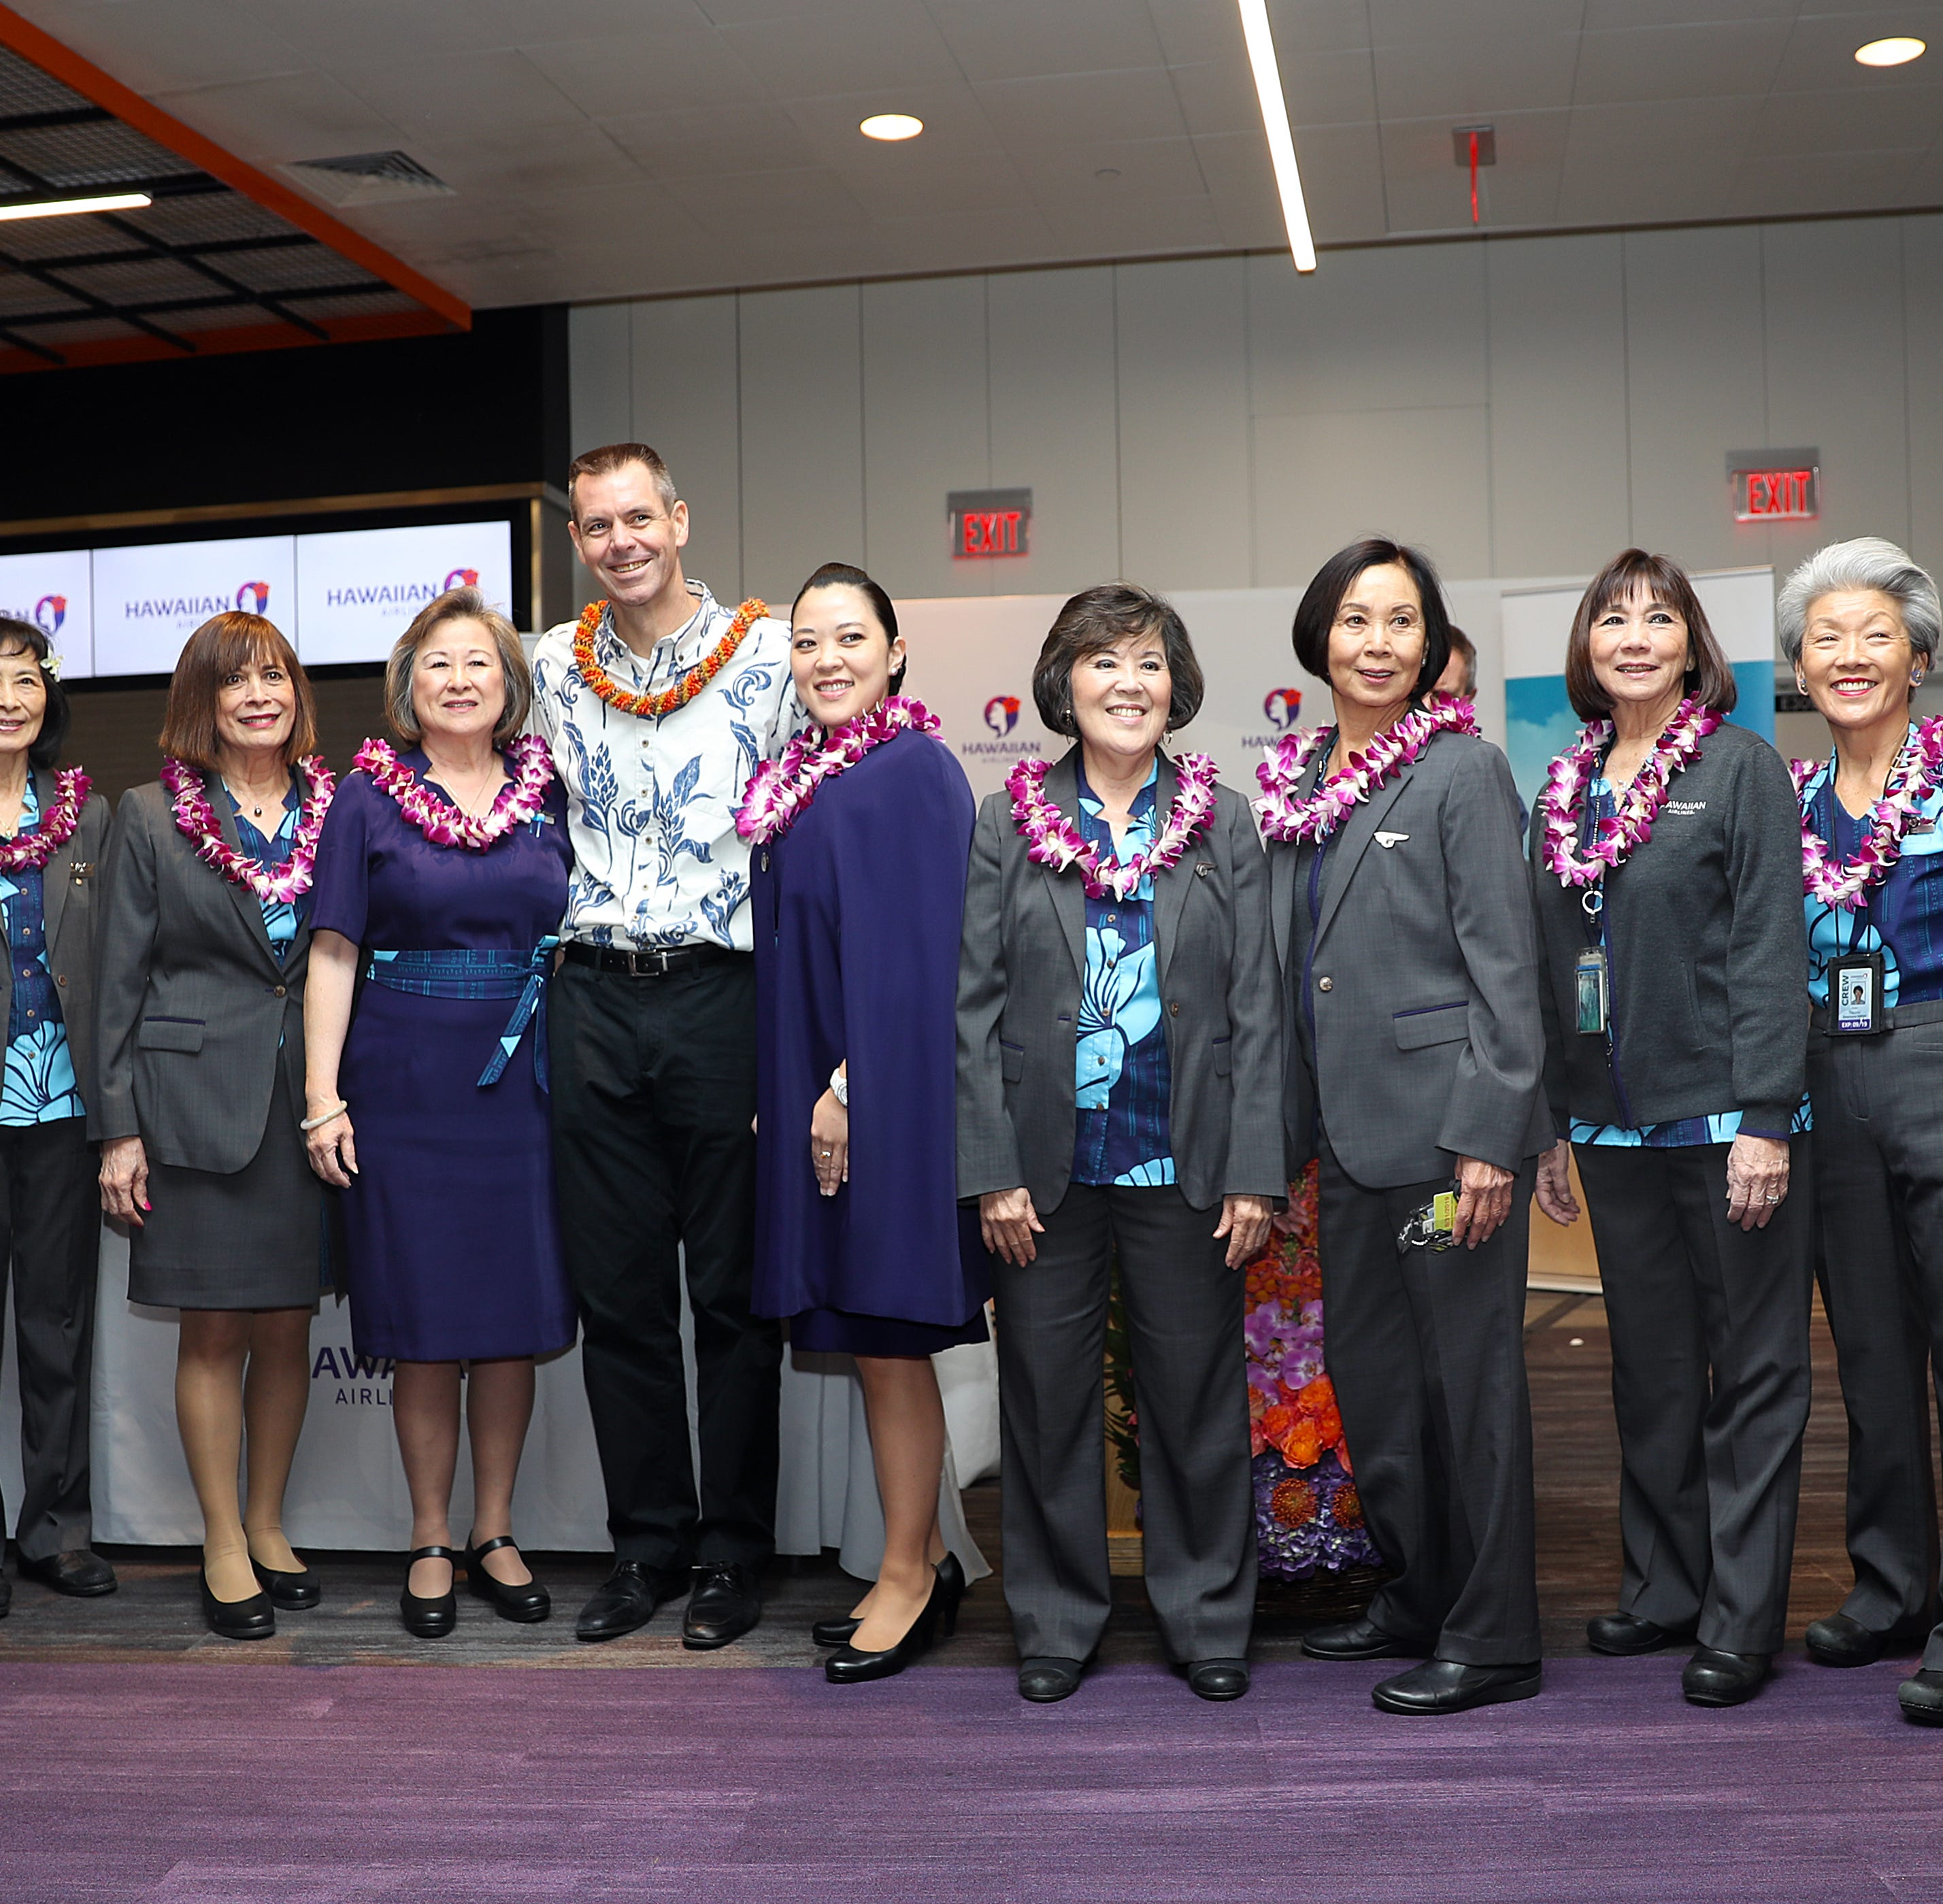 Client:  Hawaiian Airlines Hawaiian Airlines' launch of nonstop service between Boston and Honolulu will shower the Hub with aloha. A celebration of Hawaiian Airlines inaugural flight from Honolulu to Boston on 4/5/2019.